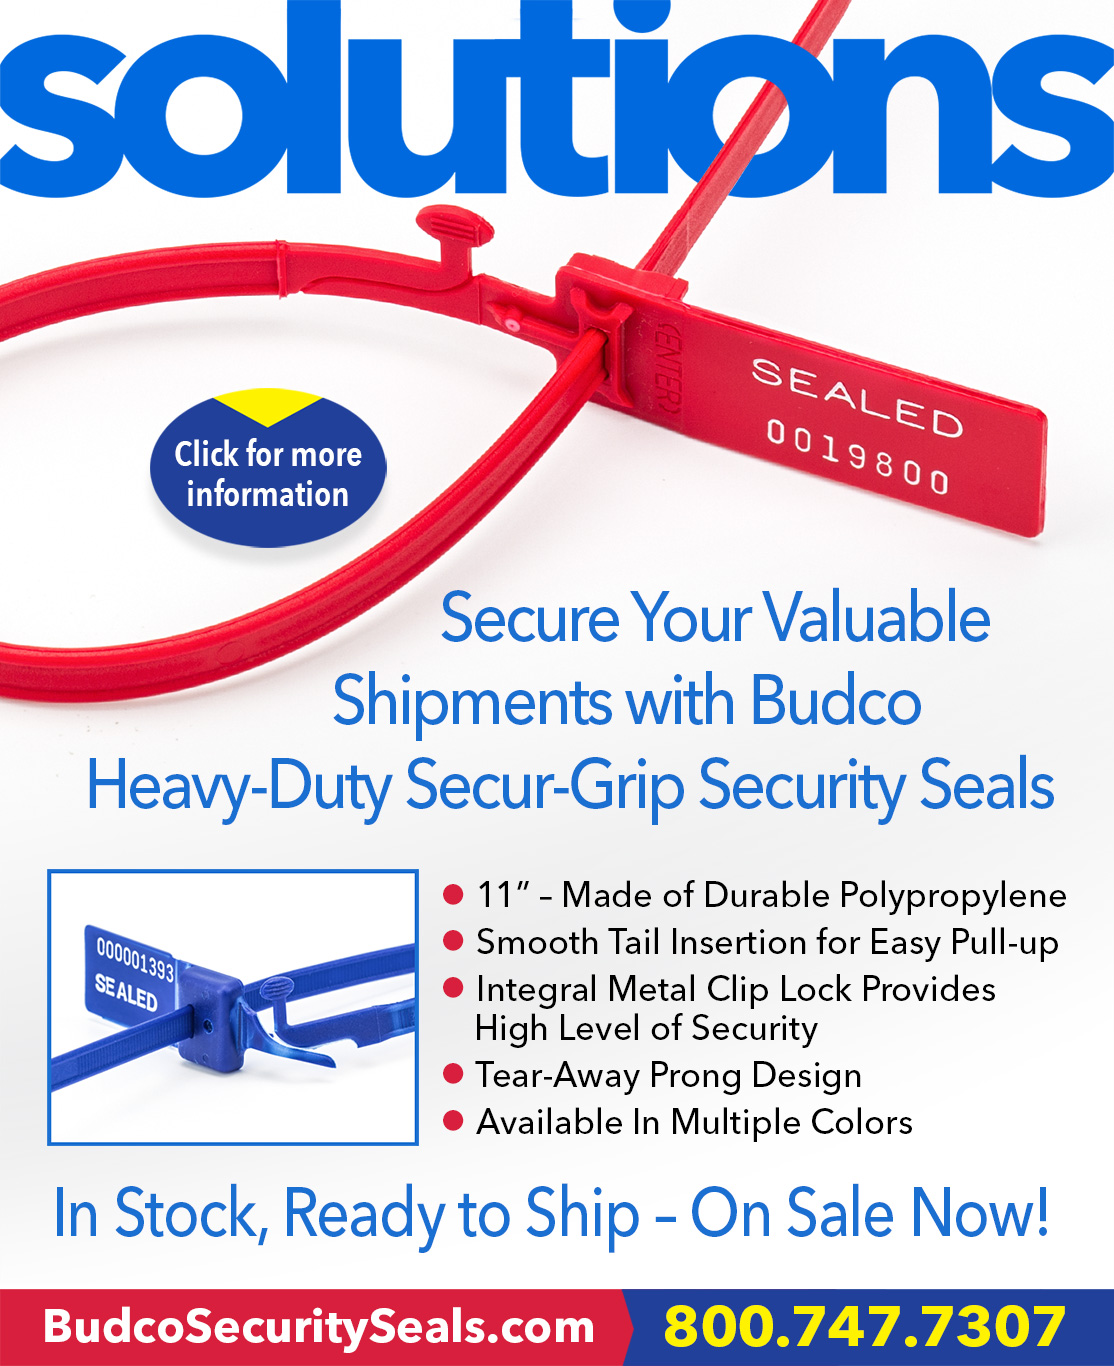 Secur-Grip Plastic Security Seals